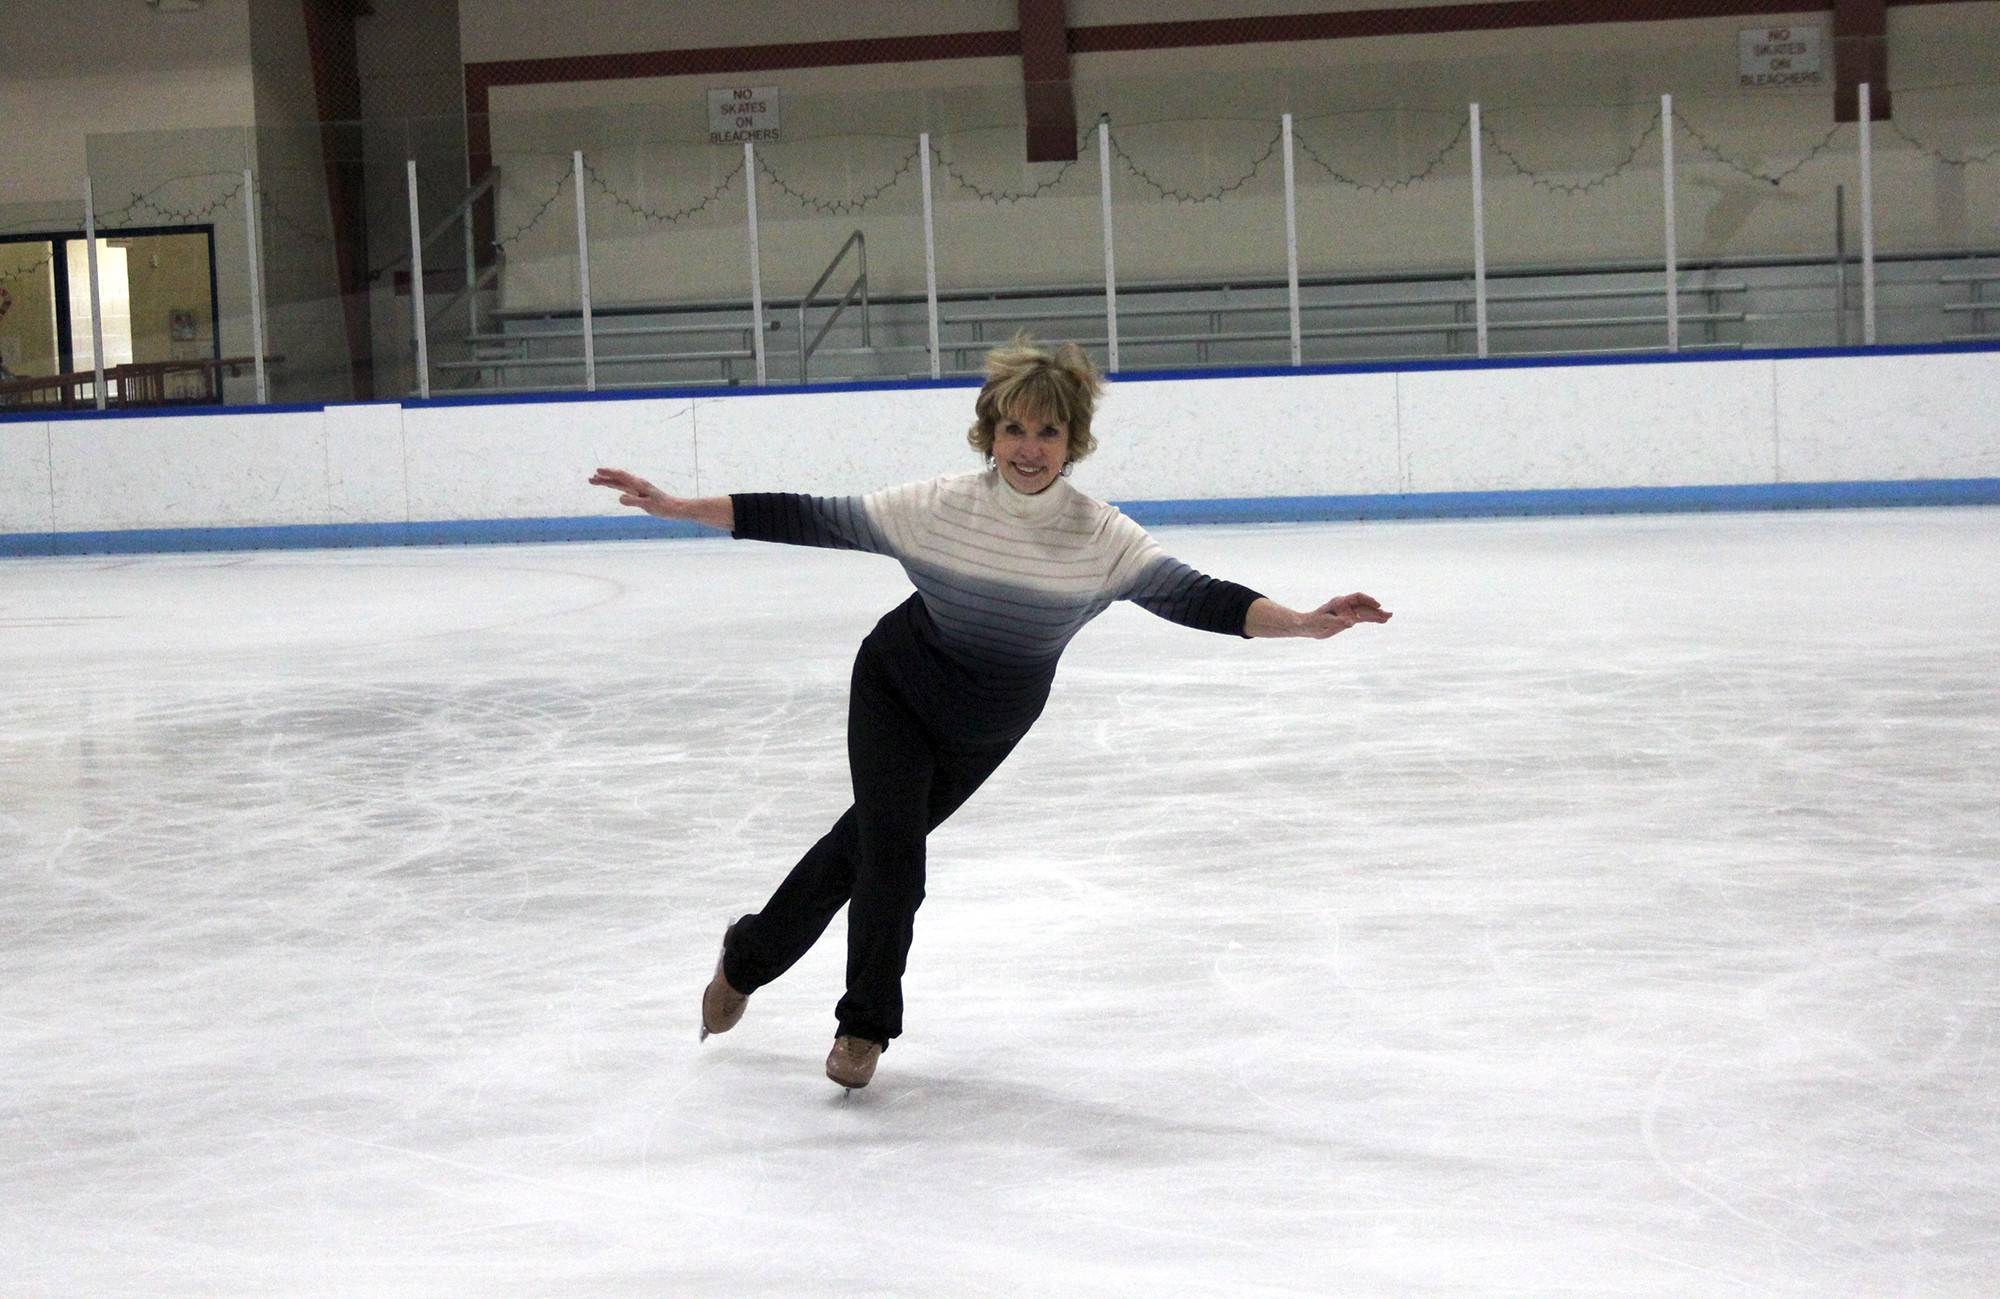 Jacquie Tennant of Potomac, Md., 74, once a Holiday on Ice performer, practices at the Wheaton Regional Park rink in Wheaton, Md. She says the exercise helps keep her muscles strong.